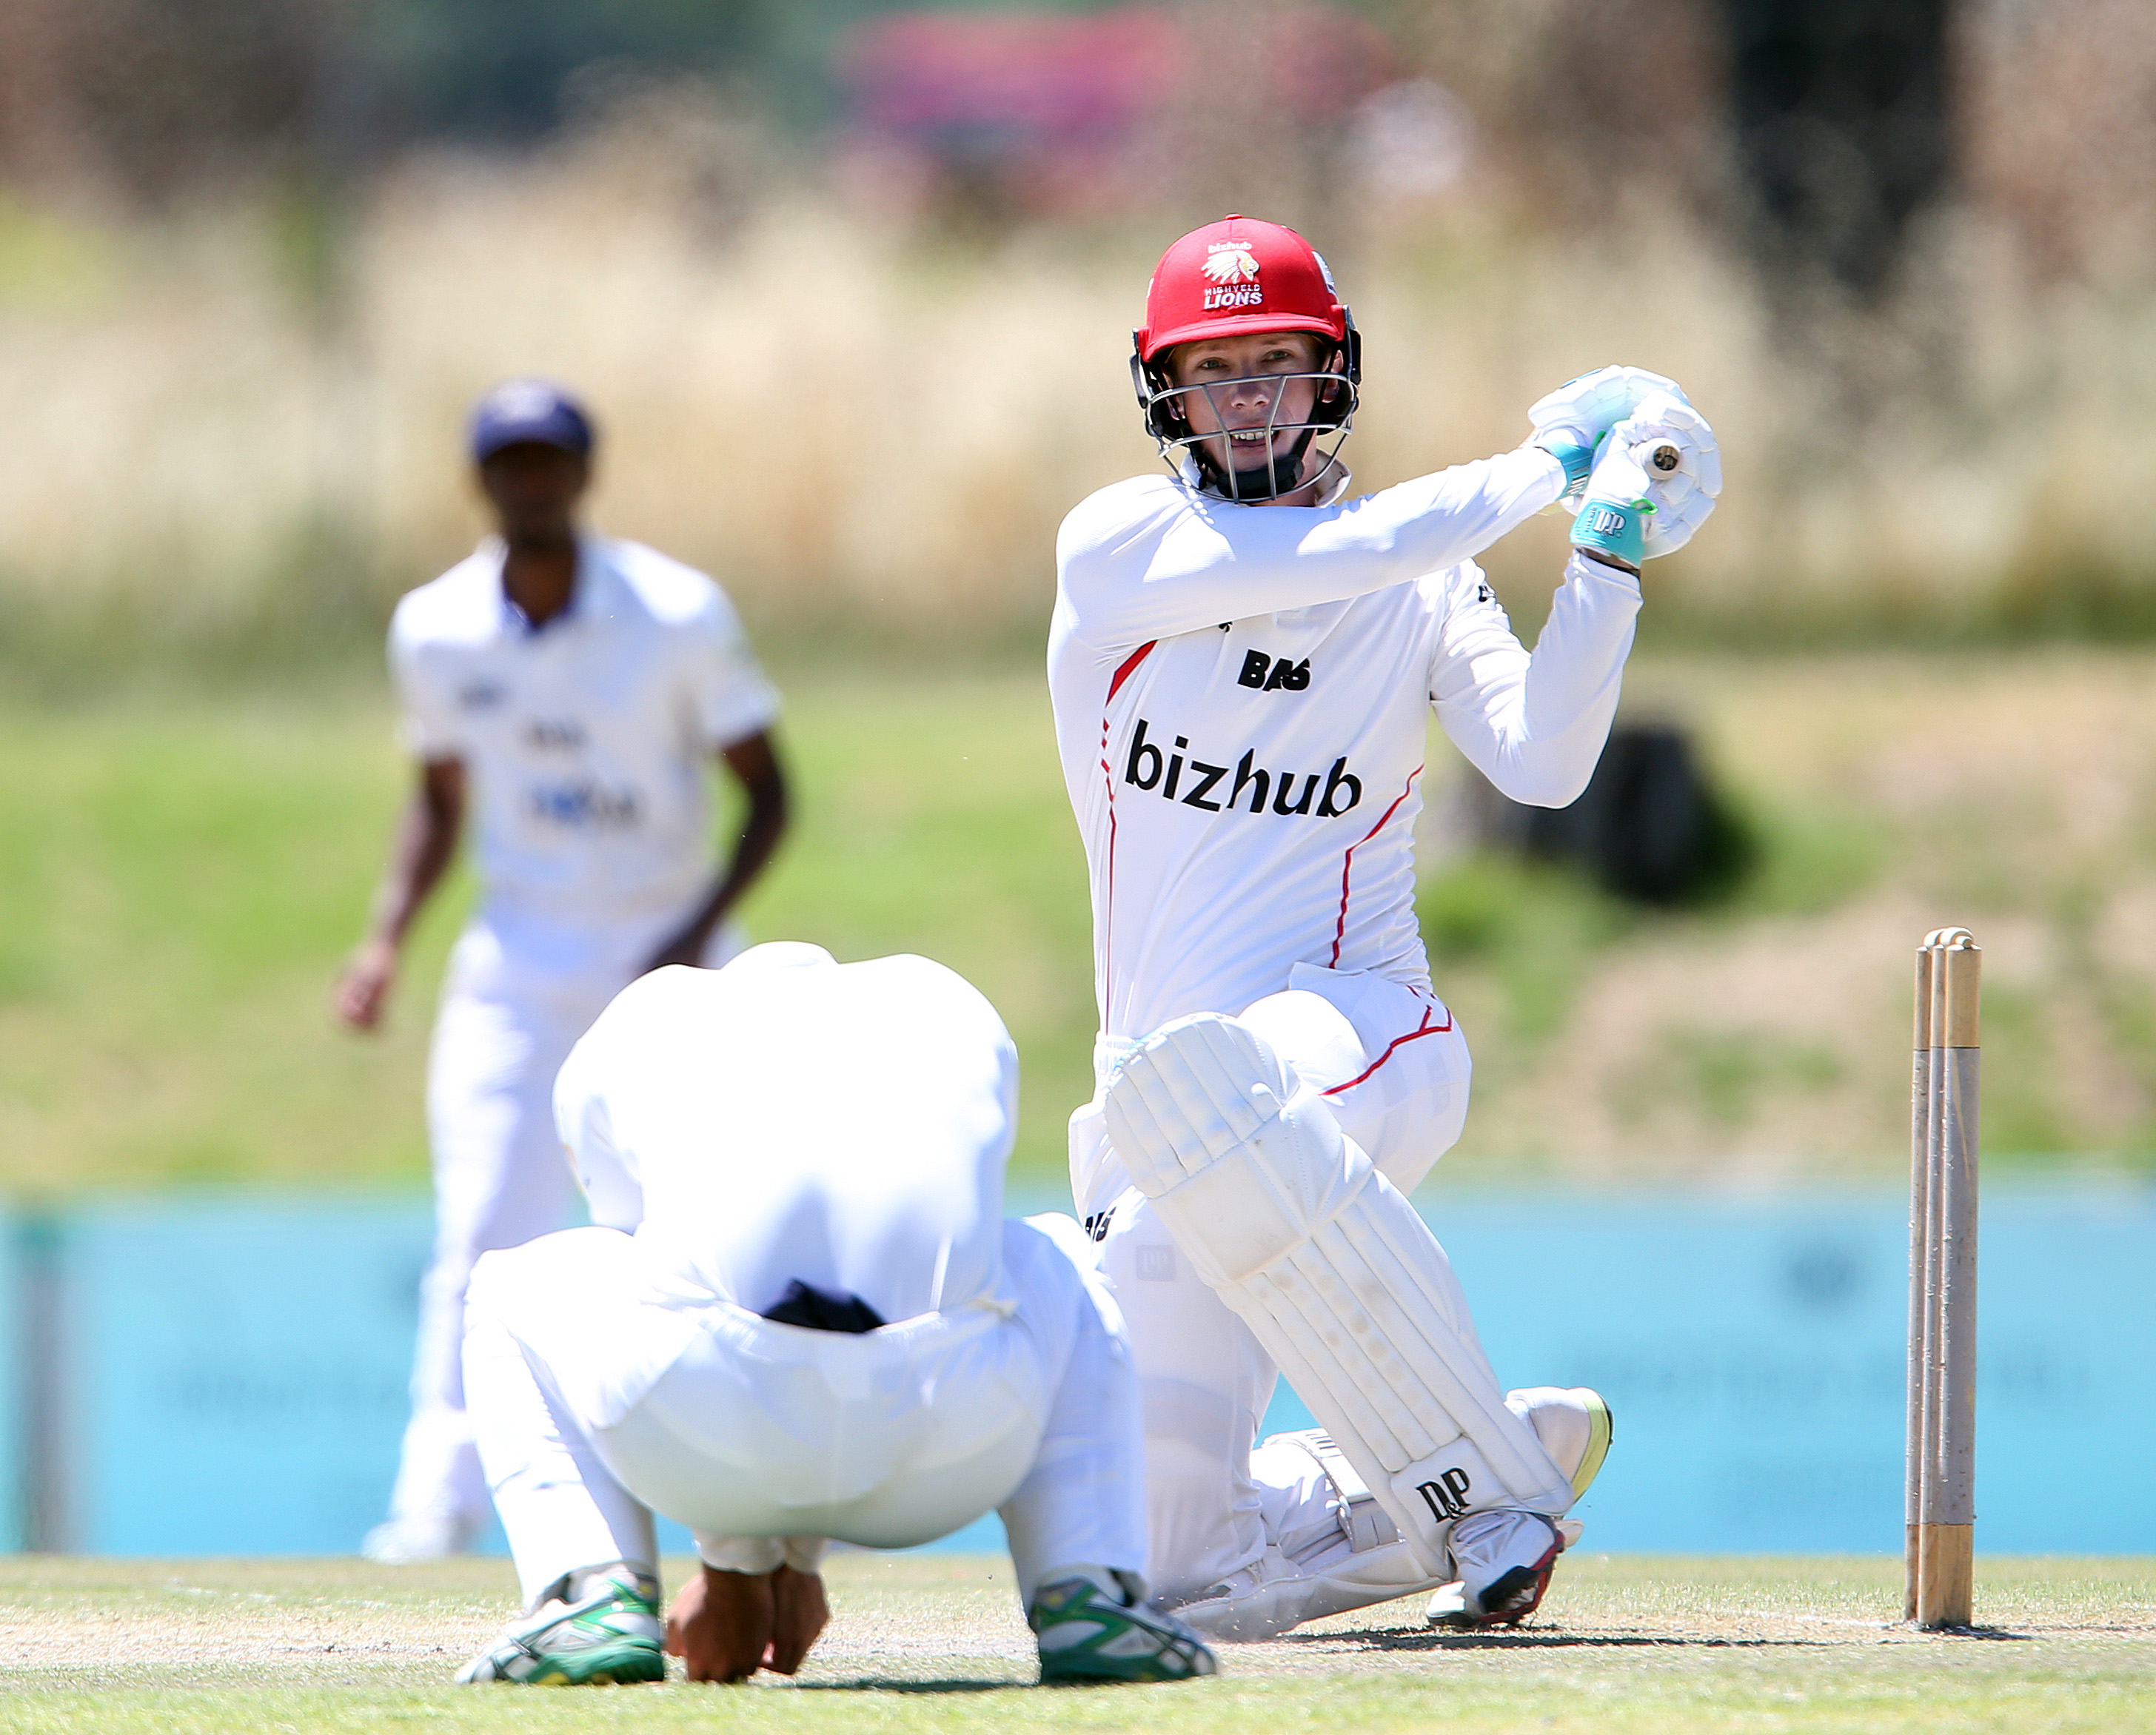 PAARL, SOUTH AFRICA - NOVEMBER 07: Rassie van der Dussen of Lions during day 3 of the 4 Day Franchise Series match between WSB Cape Cobras and bizhub Highveld Lions at Eurolux Boland Park on November 07, 2018 in Paarl, South Africa. (Photo by Carl Fourie/Gallo Images)